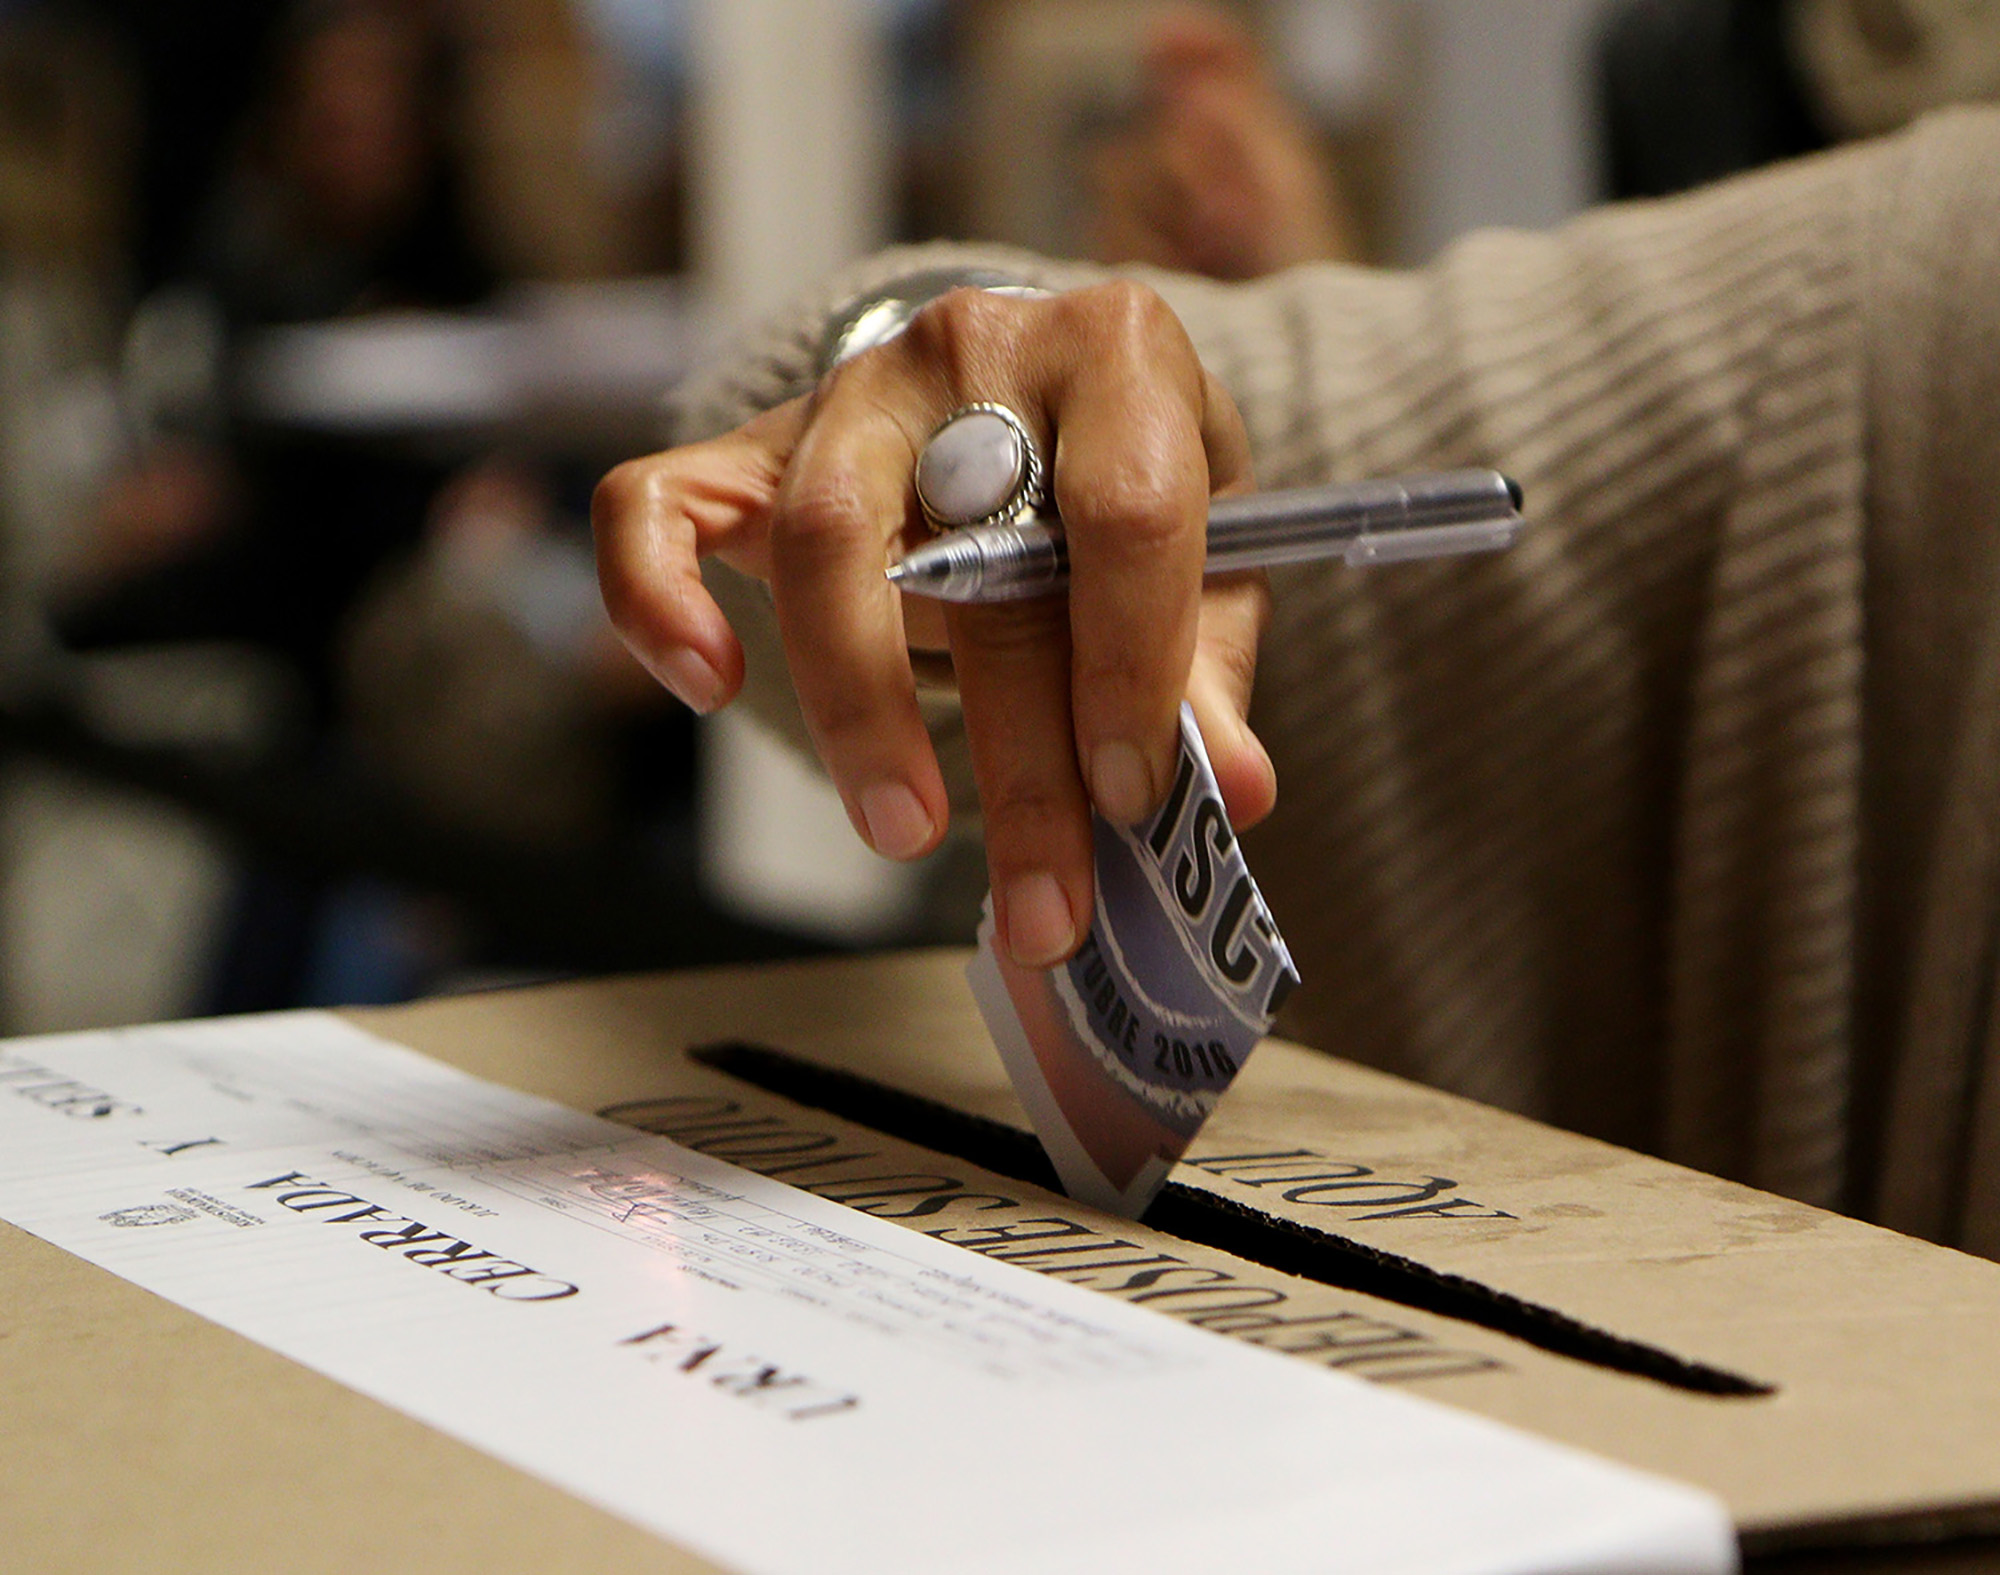 A woman casting her vote inside the Colombian Consulate on election day. (Image: Monica Espitia)